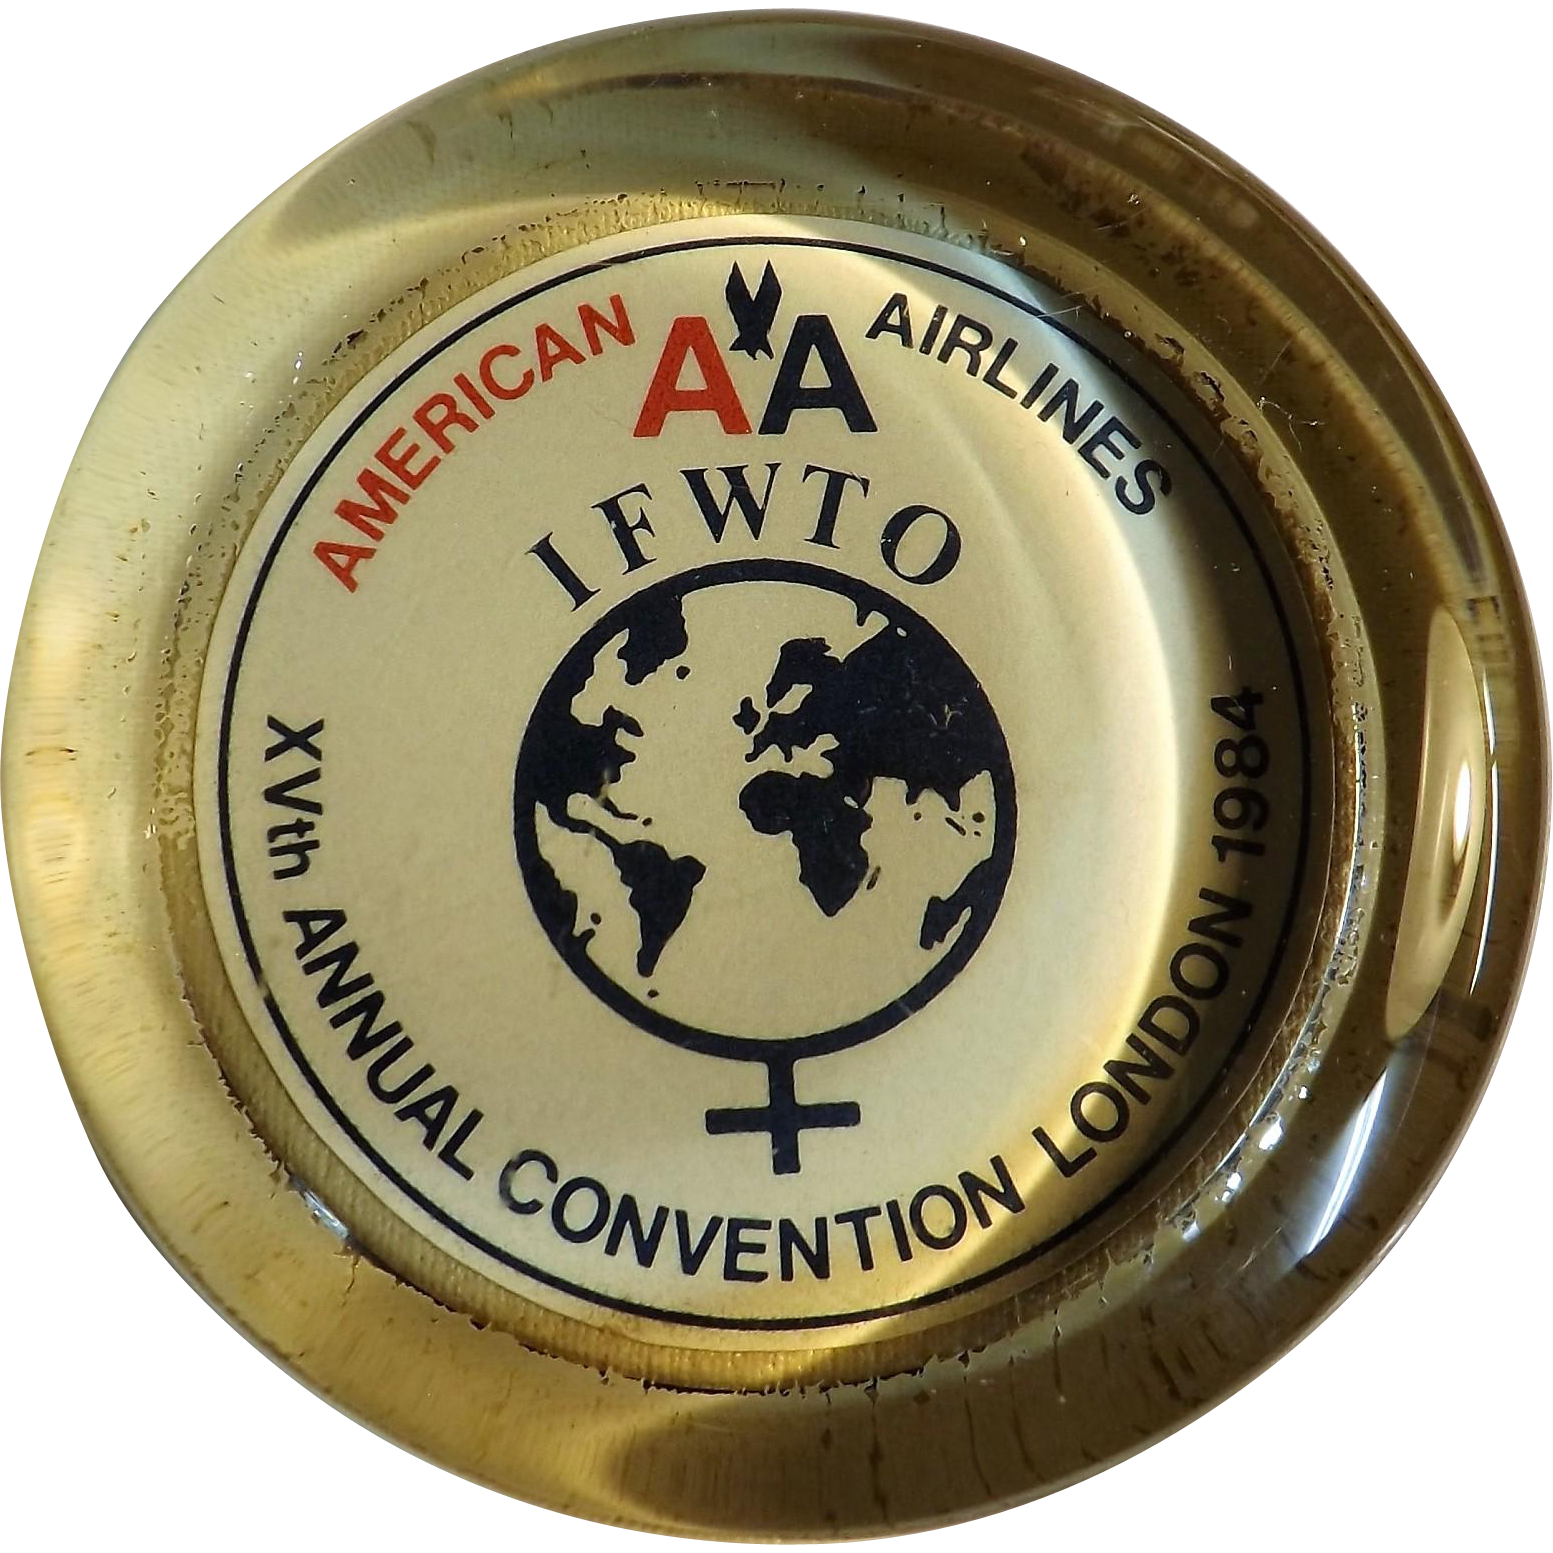 I F W T O Annual Convention 1984 Souvenir Paperweight American Airlines